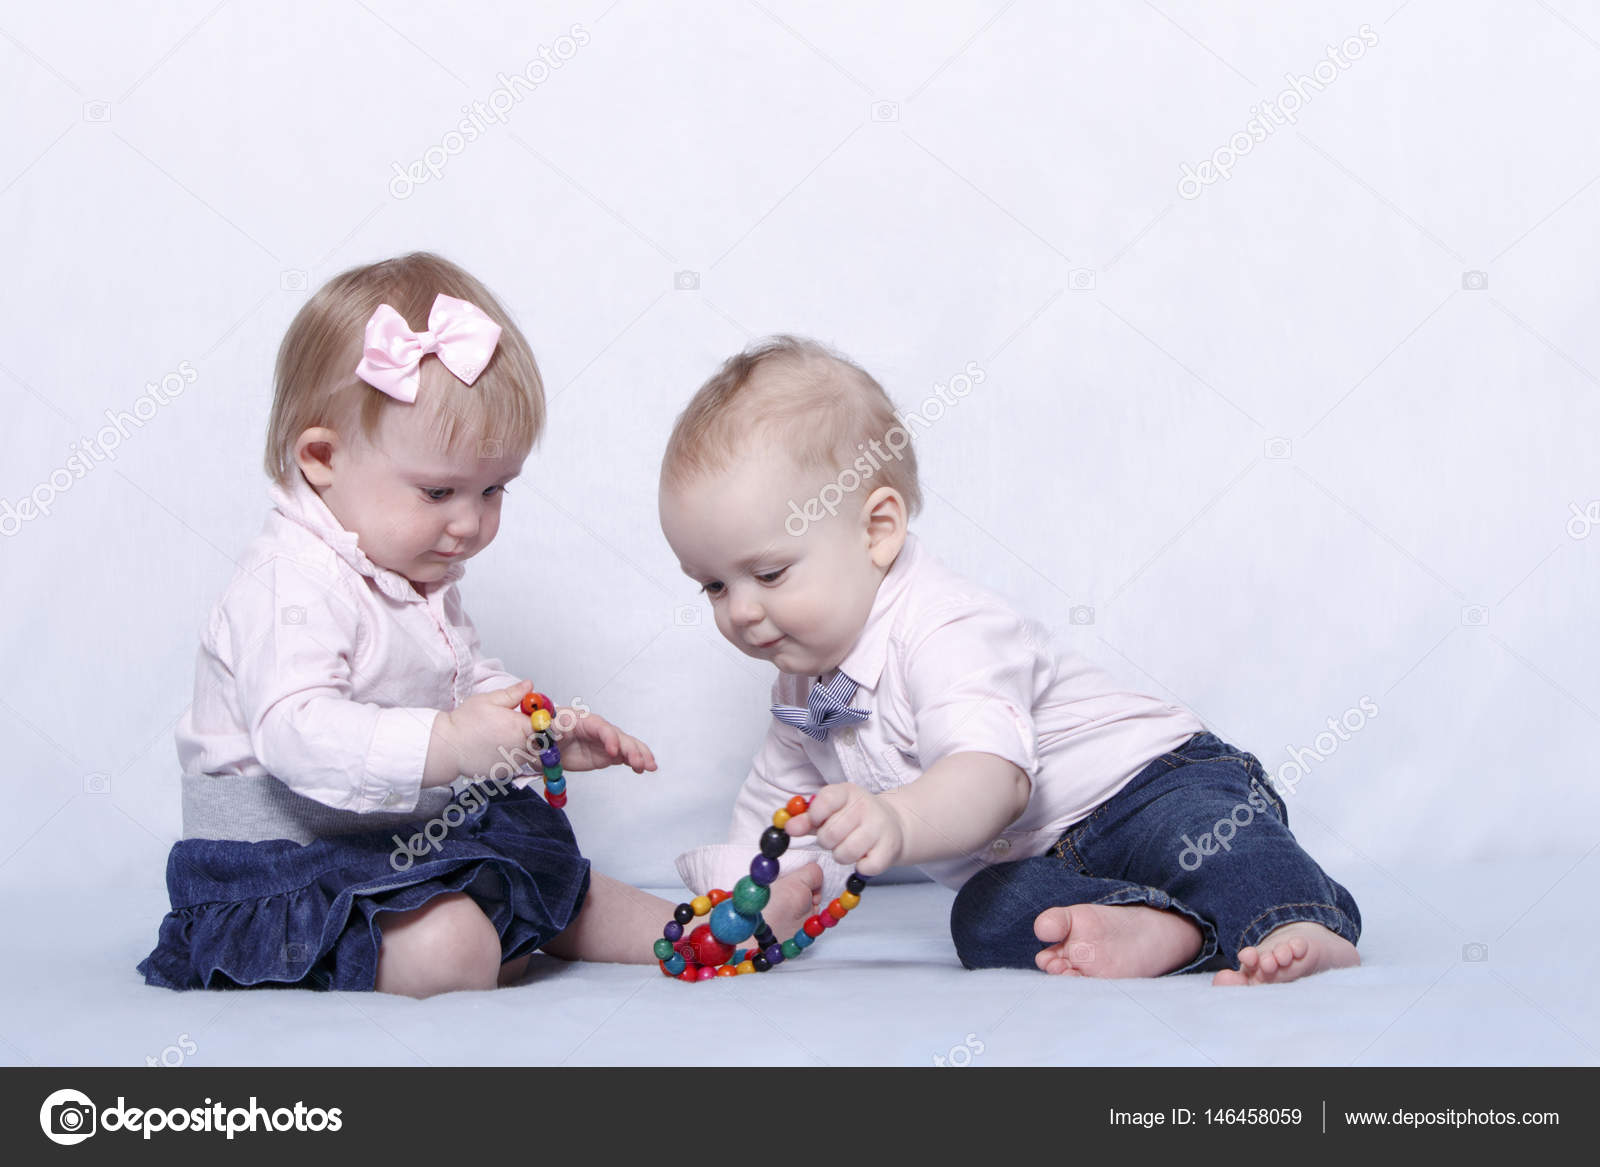 love story of two cute kids. infant baby girl and boy playing with